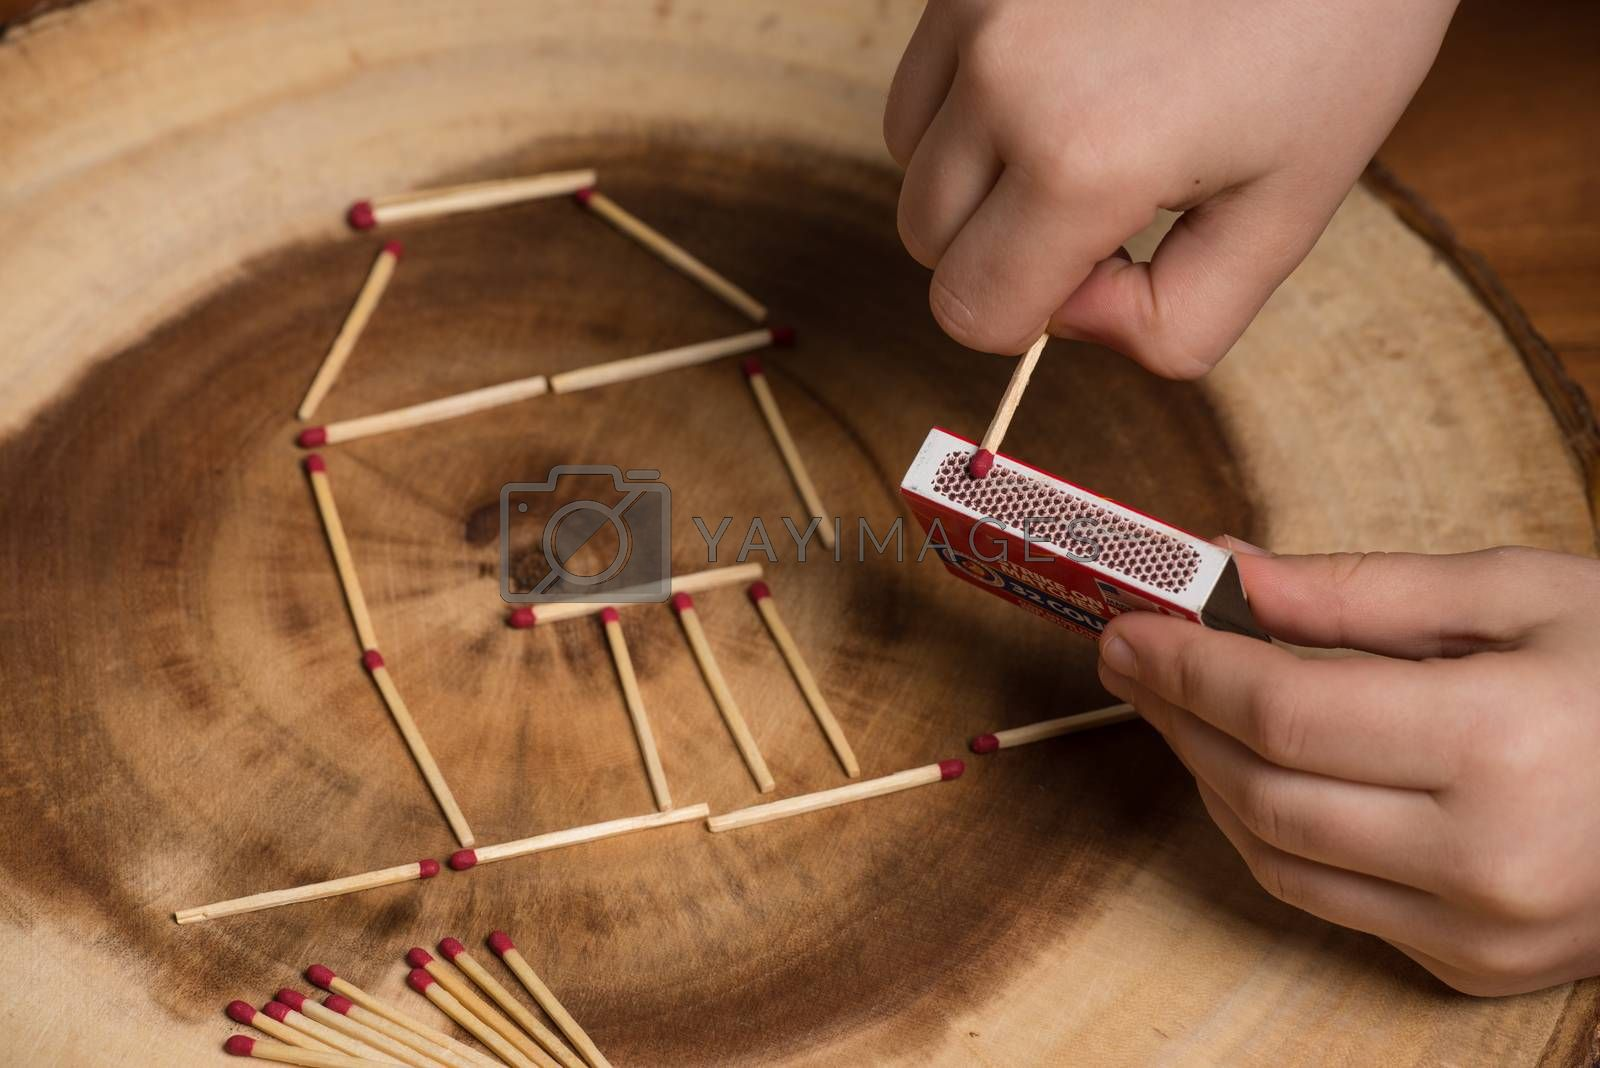 Matches by Dan Totilca